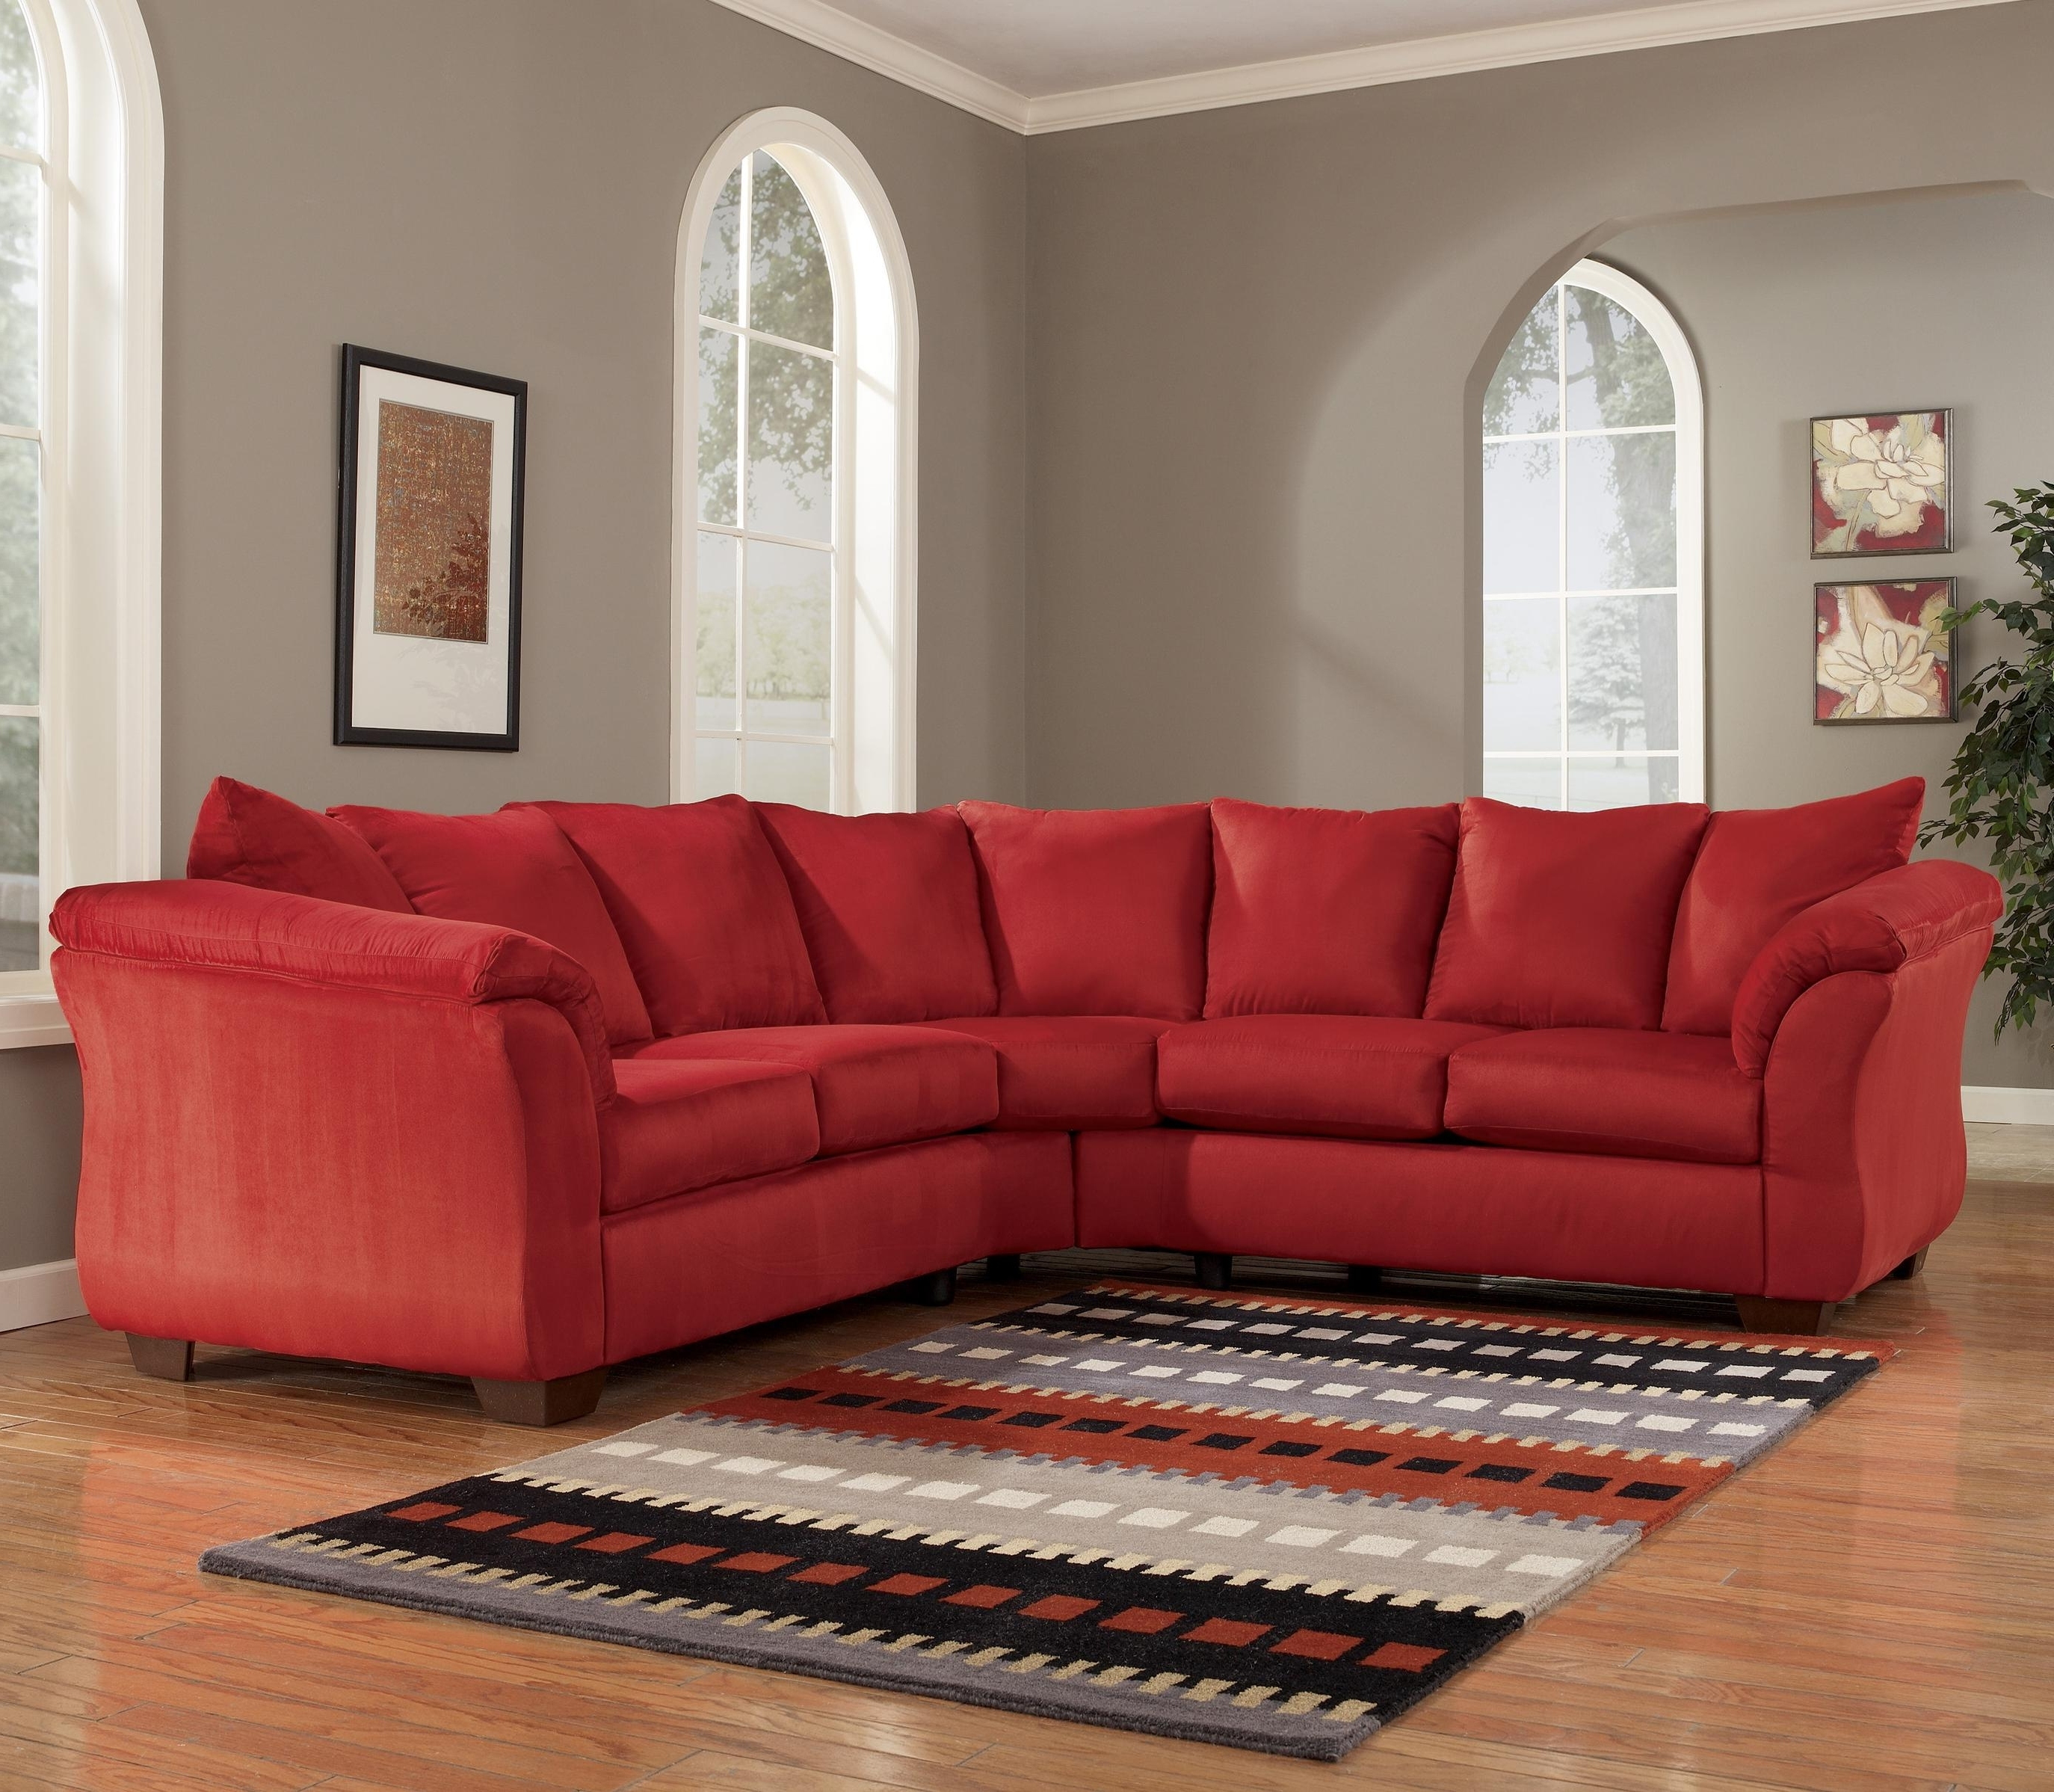 2018 102X102 Sectional Sofas Inside Signature Designashley Darcy – Salsa Contemporary Sectional (View 14 of 20)